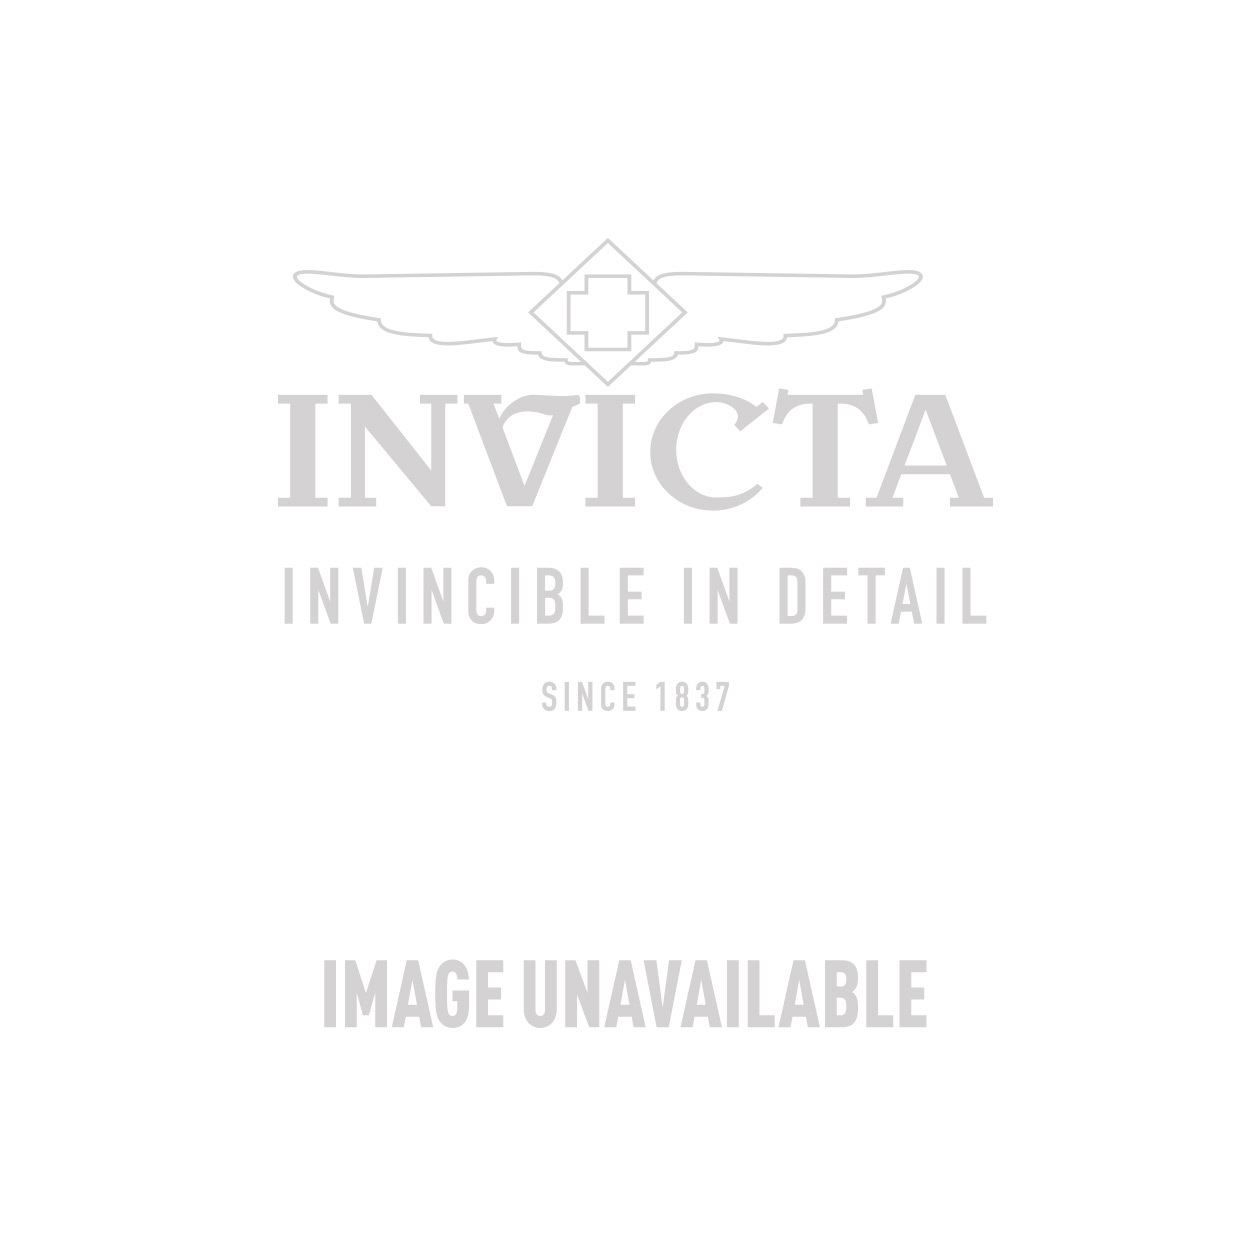 Invicta Specialty Swiss Movement Quartz Watch - Stainless Steel case Stainless Steel band - Model 5249W